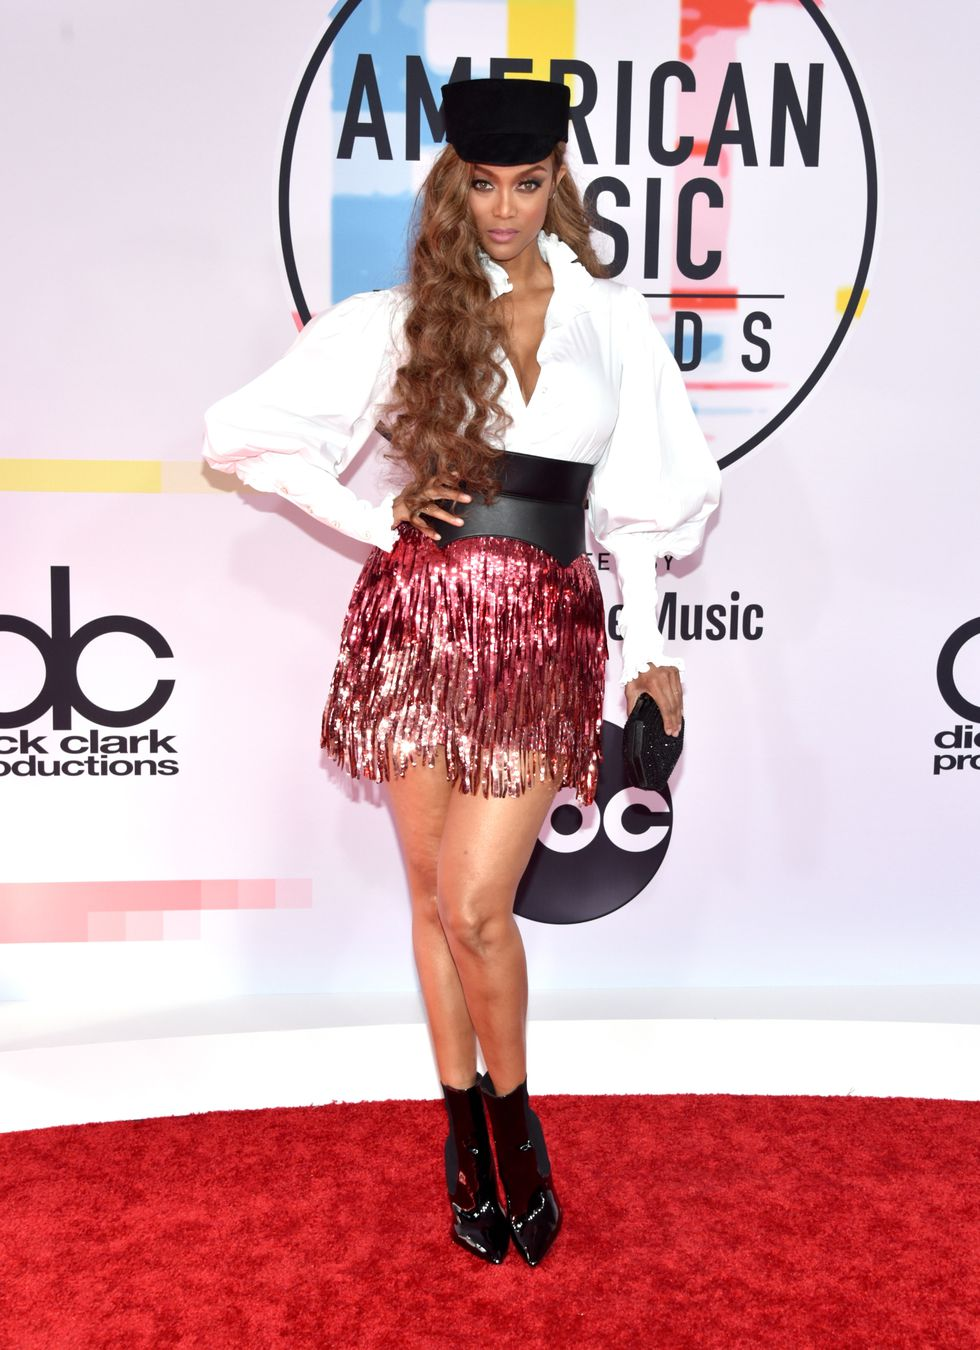 tyra-banks-attends-the-2018-american-music-awards-at-news-photo-1048368448-1539126196.jpg